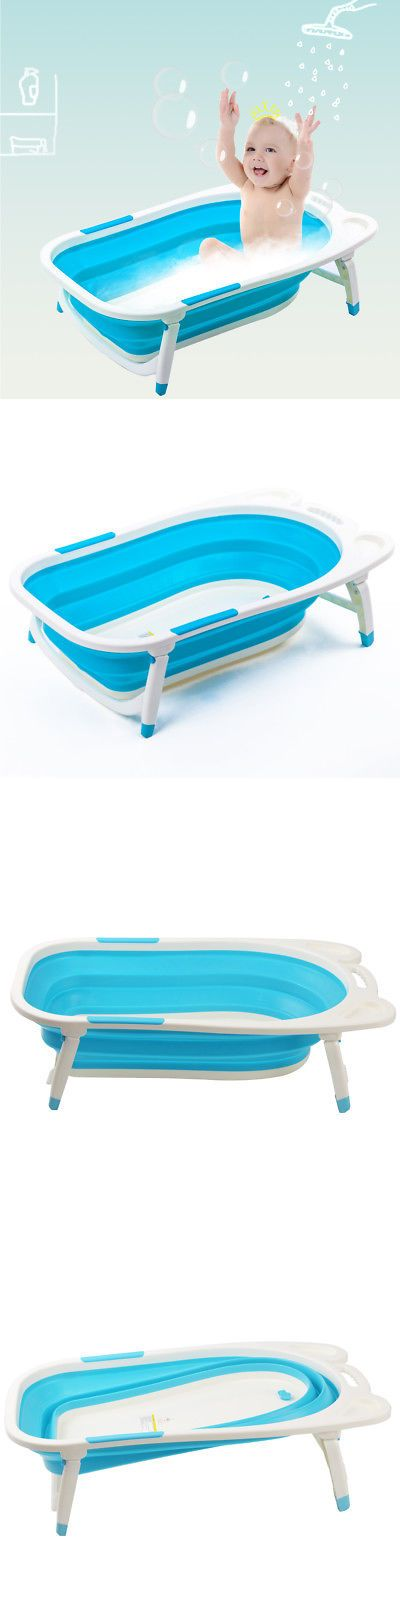 Bath Tubs 113814: Blue Baby Folding Bathtub Infant Collapsible Portable Shower Basin W Block -> BUY IT NOW ONLY: $1135.99 on eBay!